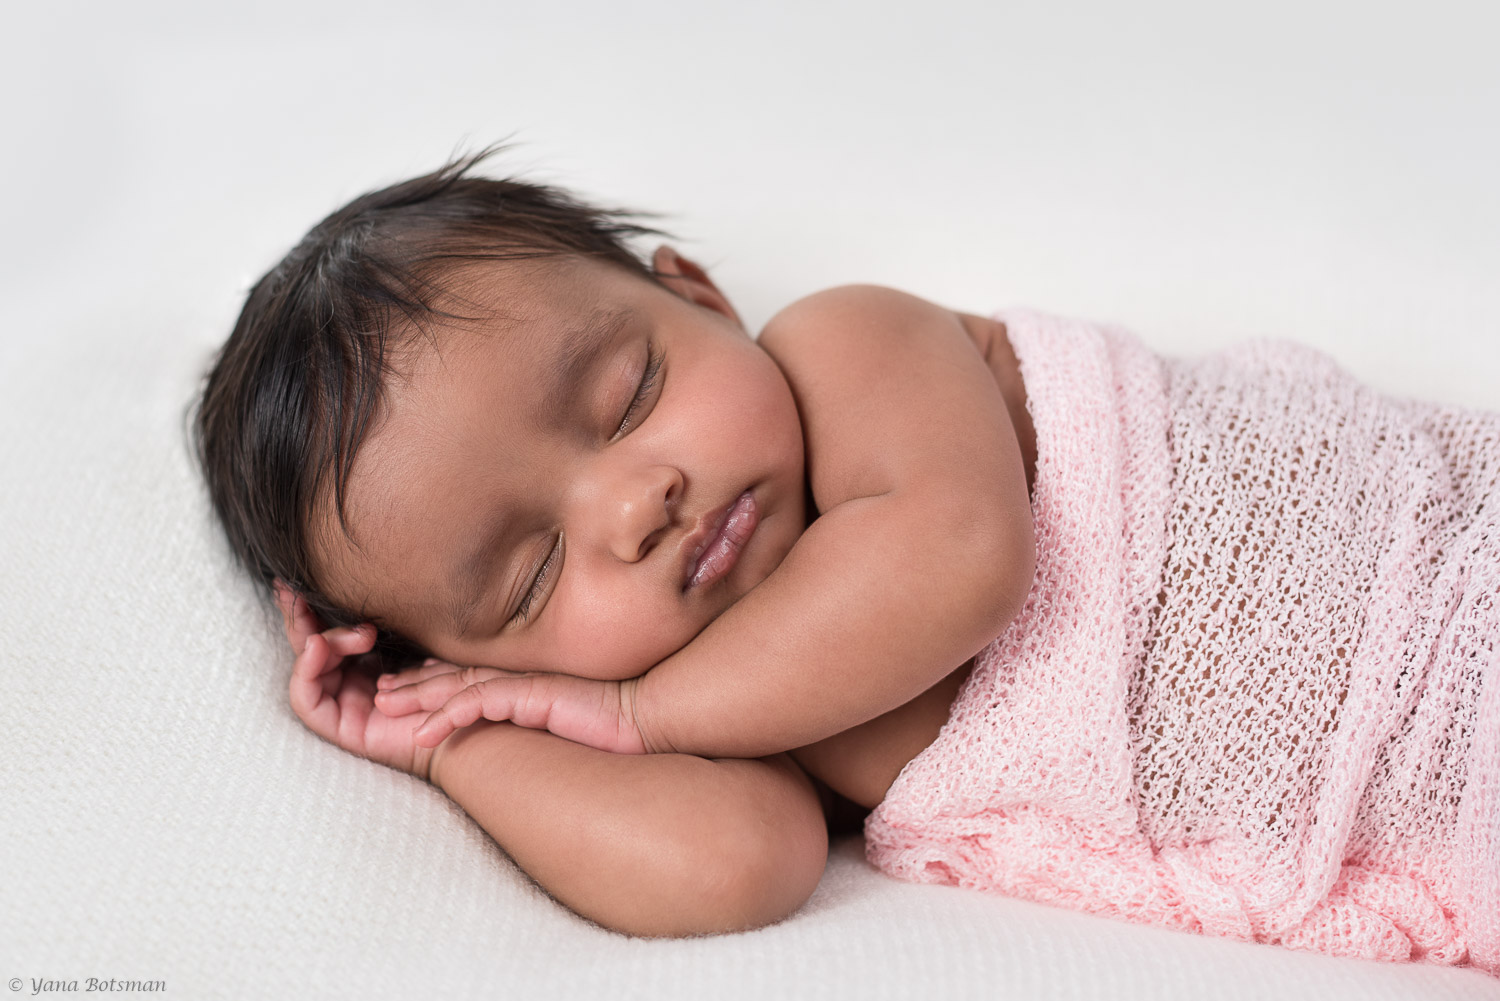 beautiful baby girl asleep on her side with hands under her cheek.jpg